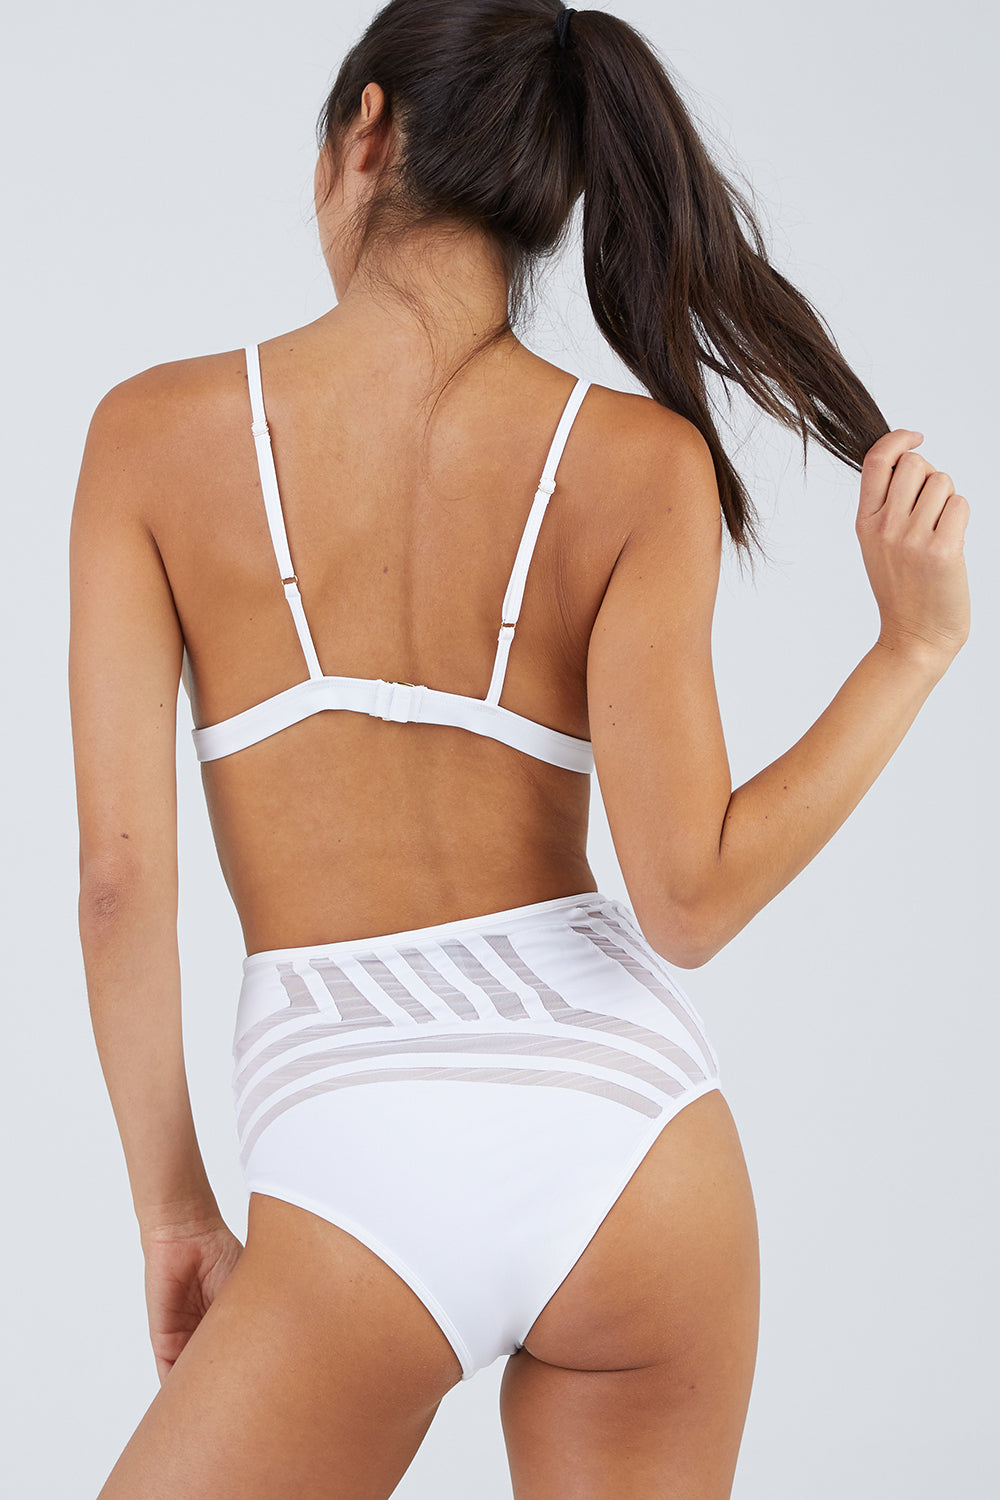 Desert Storm Mesh High Waisted Bikini Bottom - White